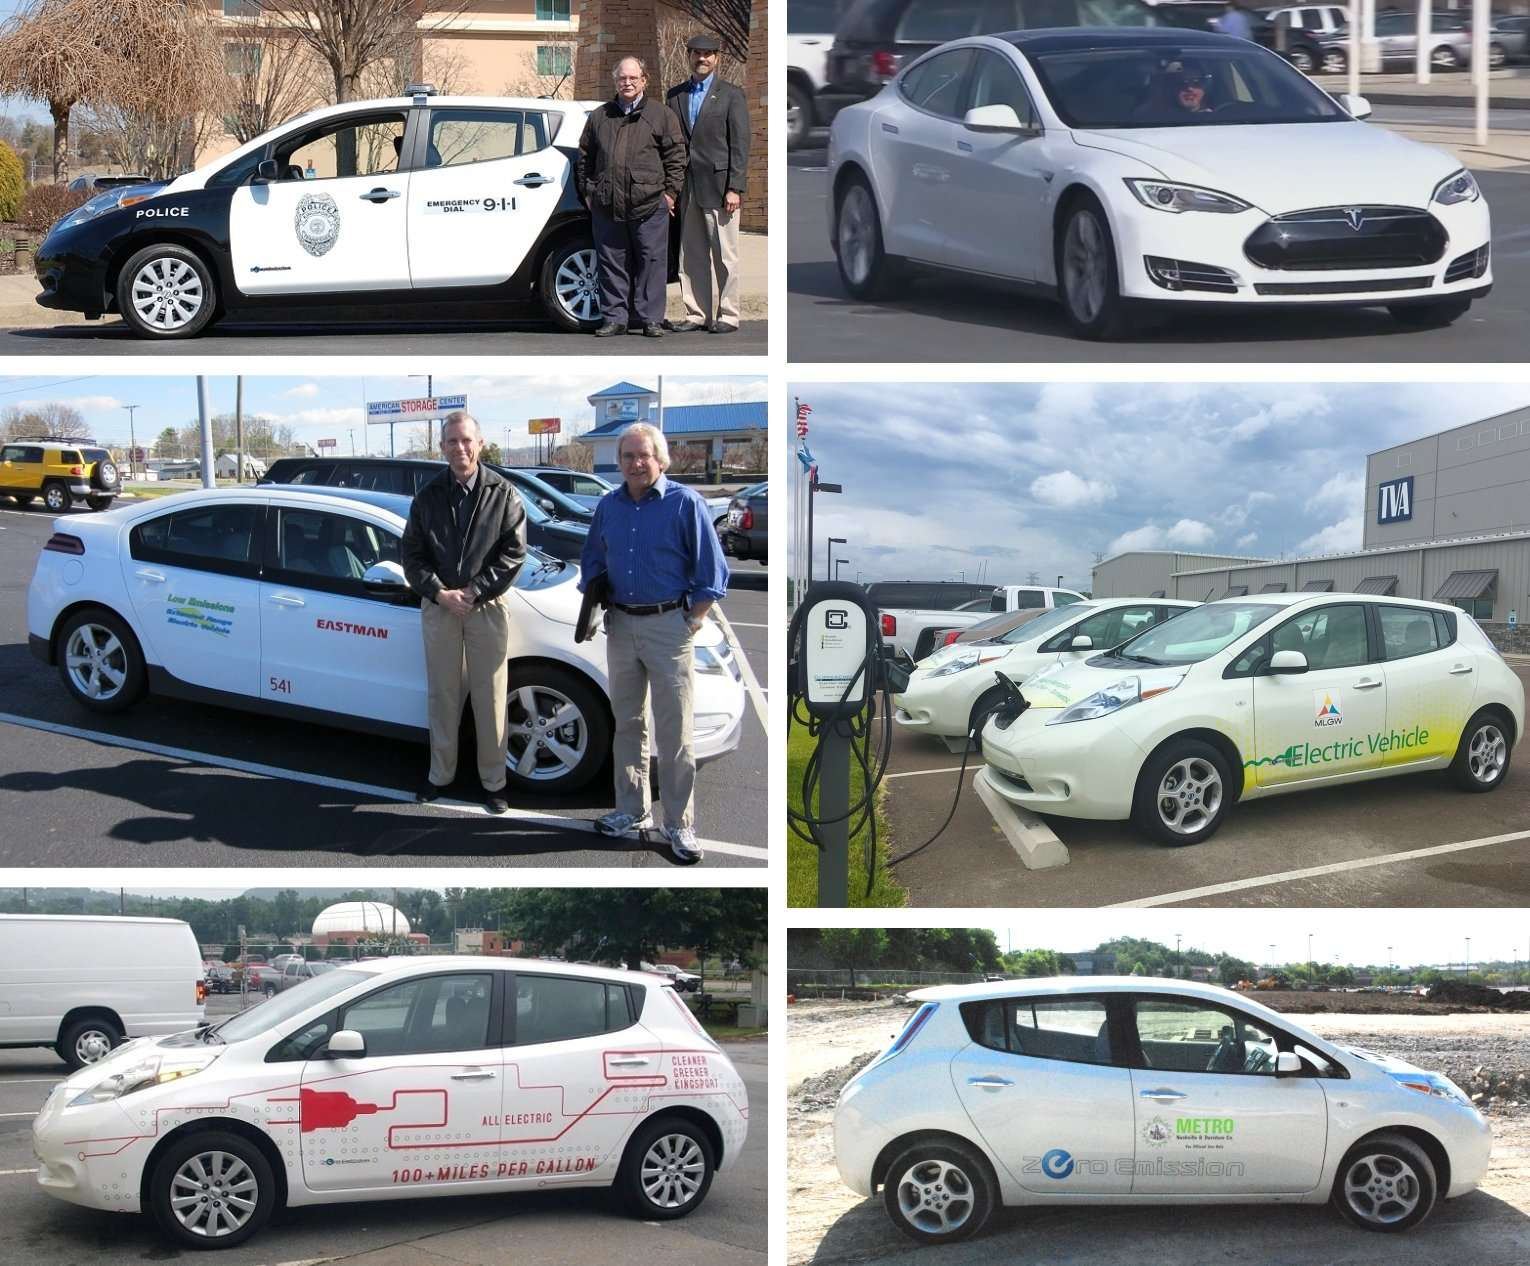 Grid of 6 photos of Plug-In Electric Vehicles in Tennessee